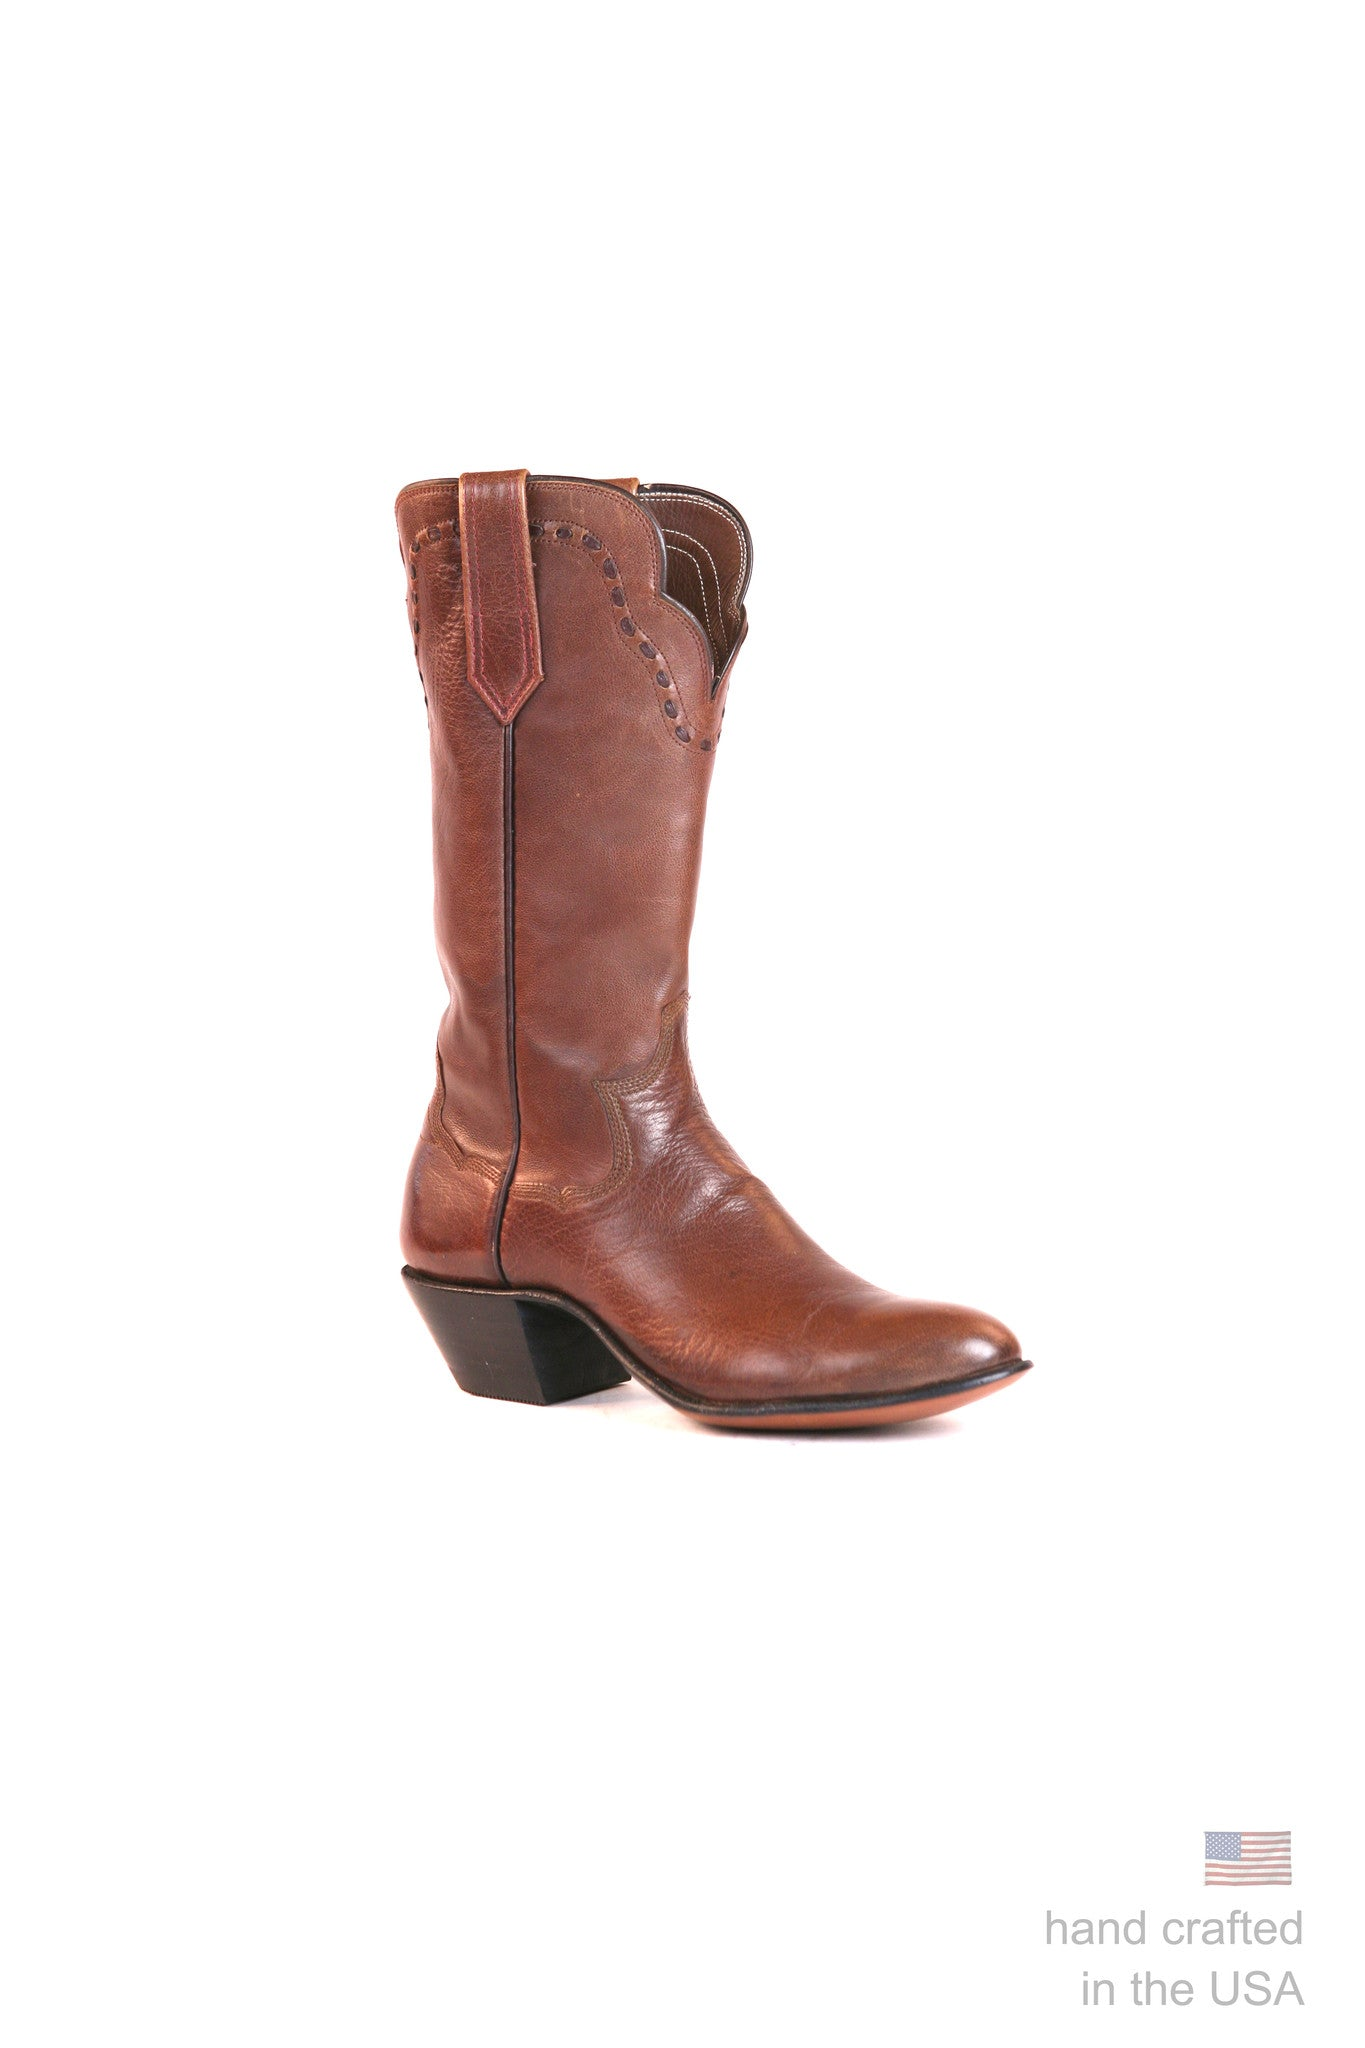 Singles: Boot 0081: Size 6.5 A